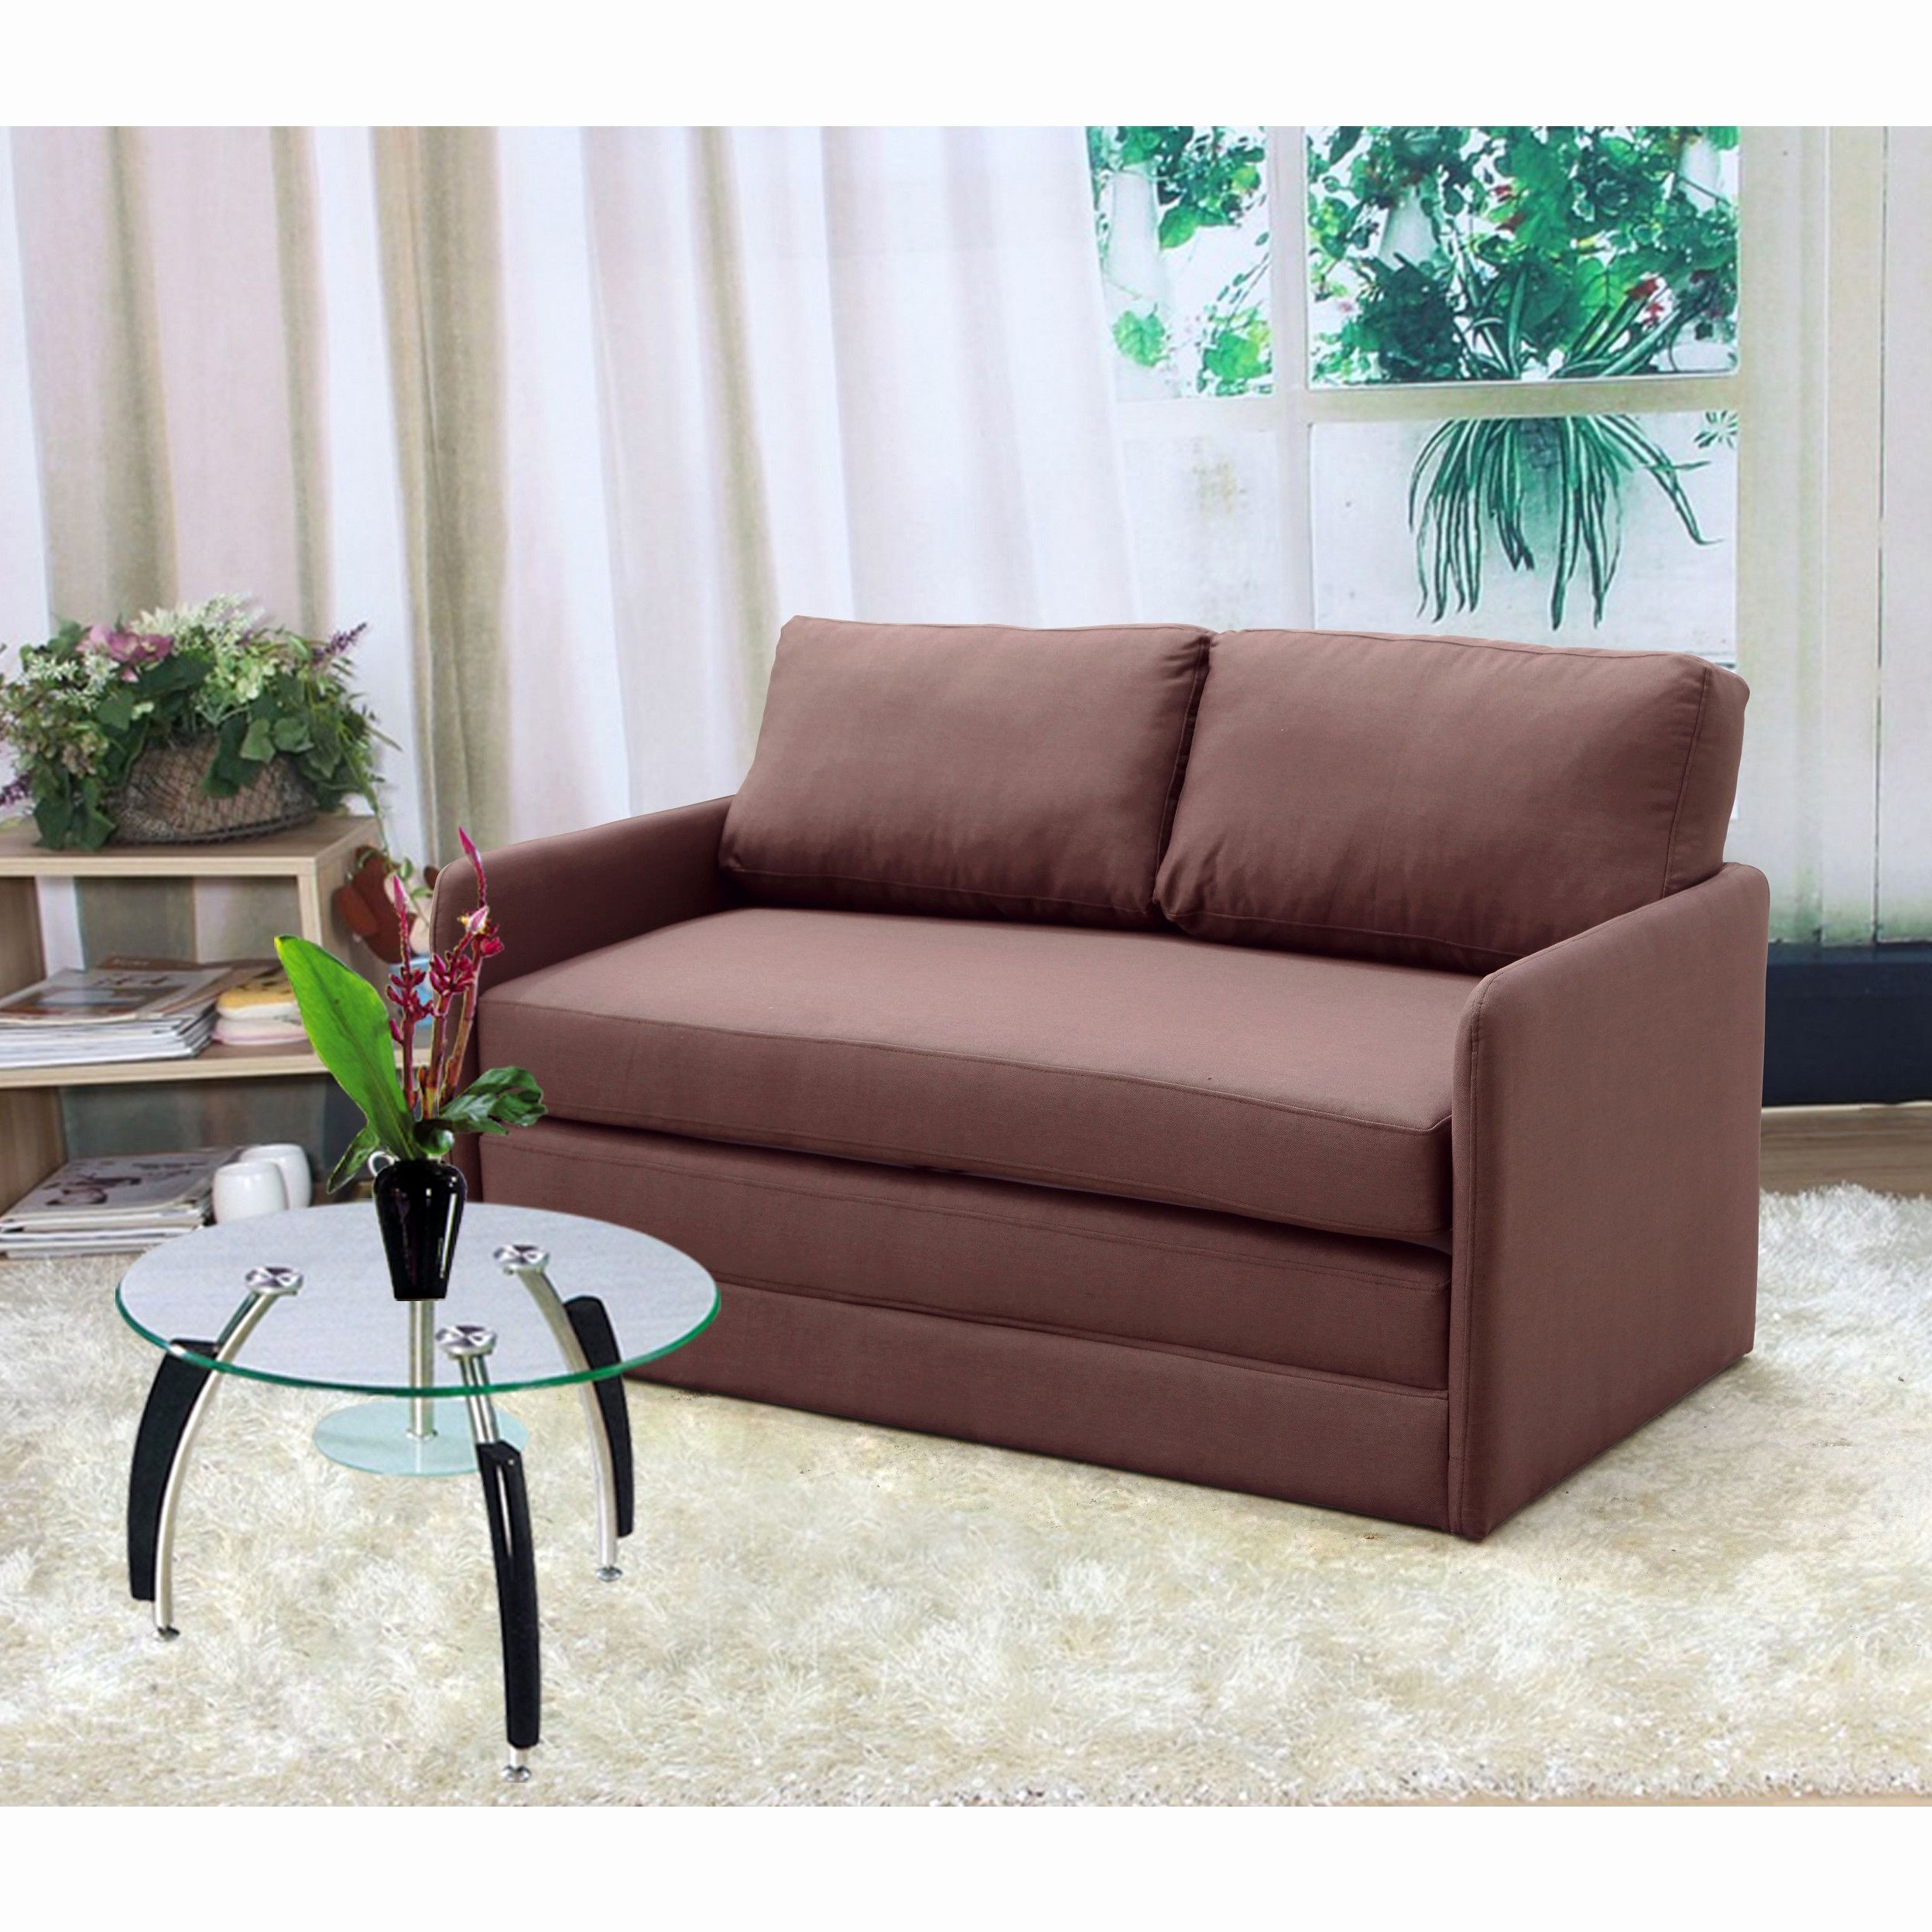 Delicieux Inspirational Wayfair Sleeper Sofa Pics Loveseat Sofa Bed Tags Wayfair Sofa  Sleeper Sleeper Sofa Leather